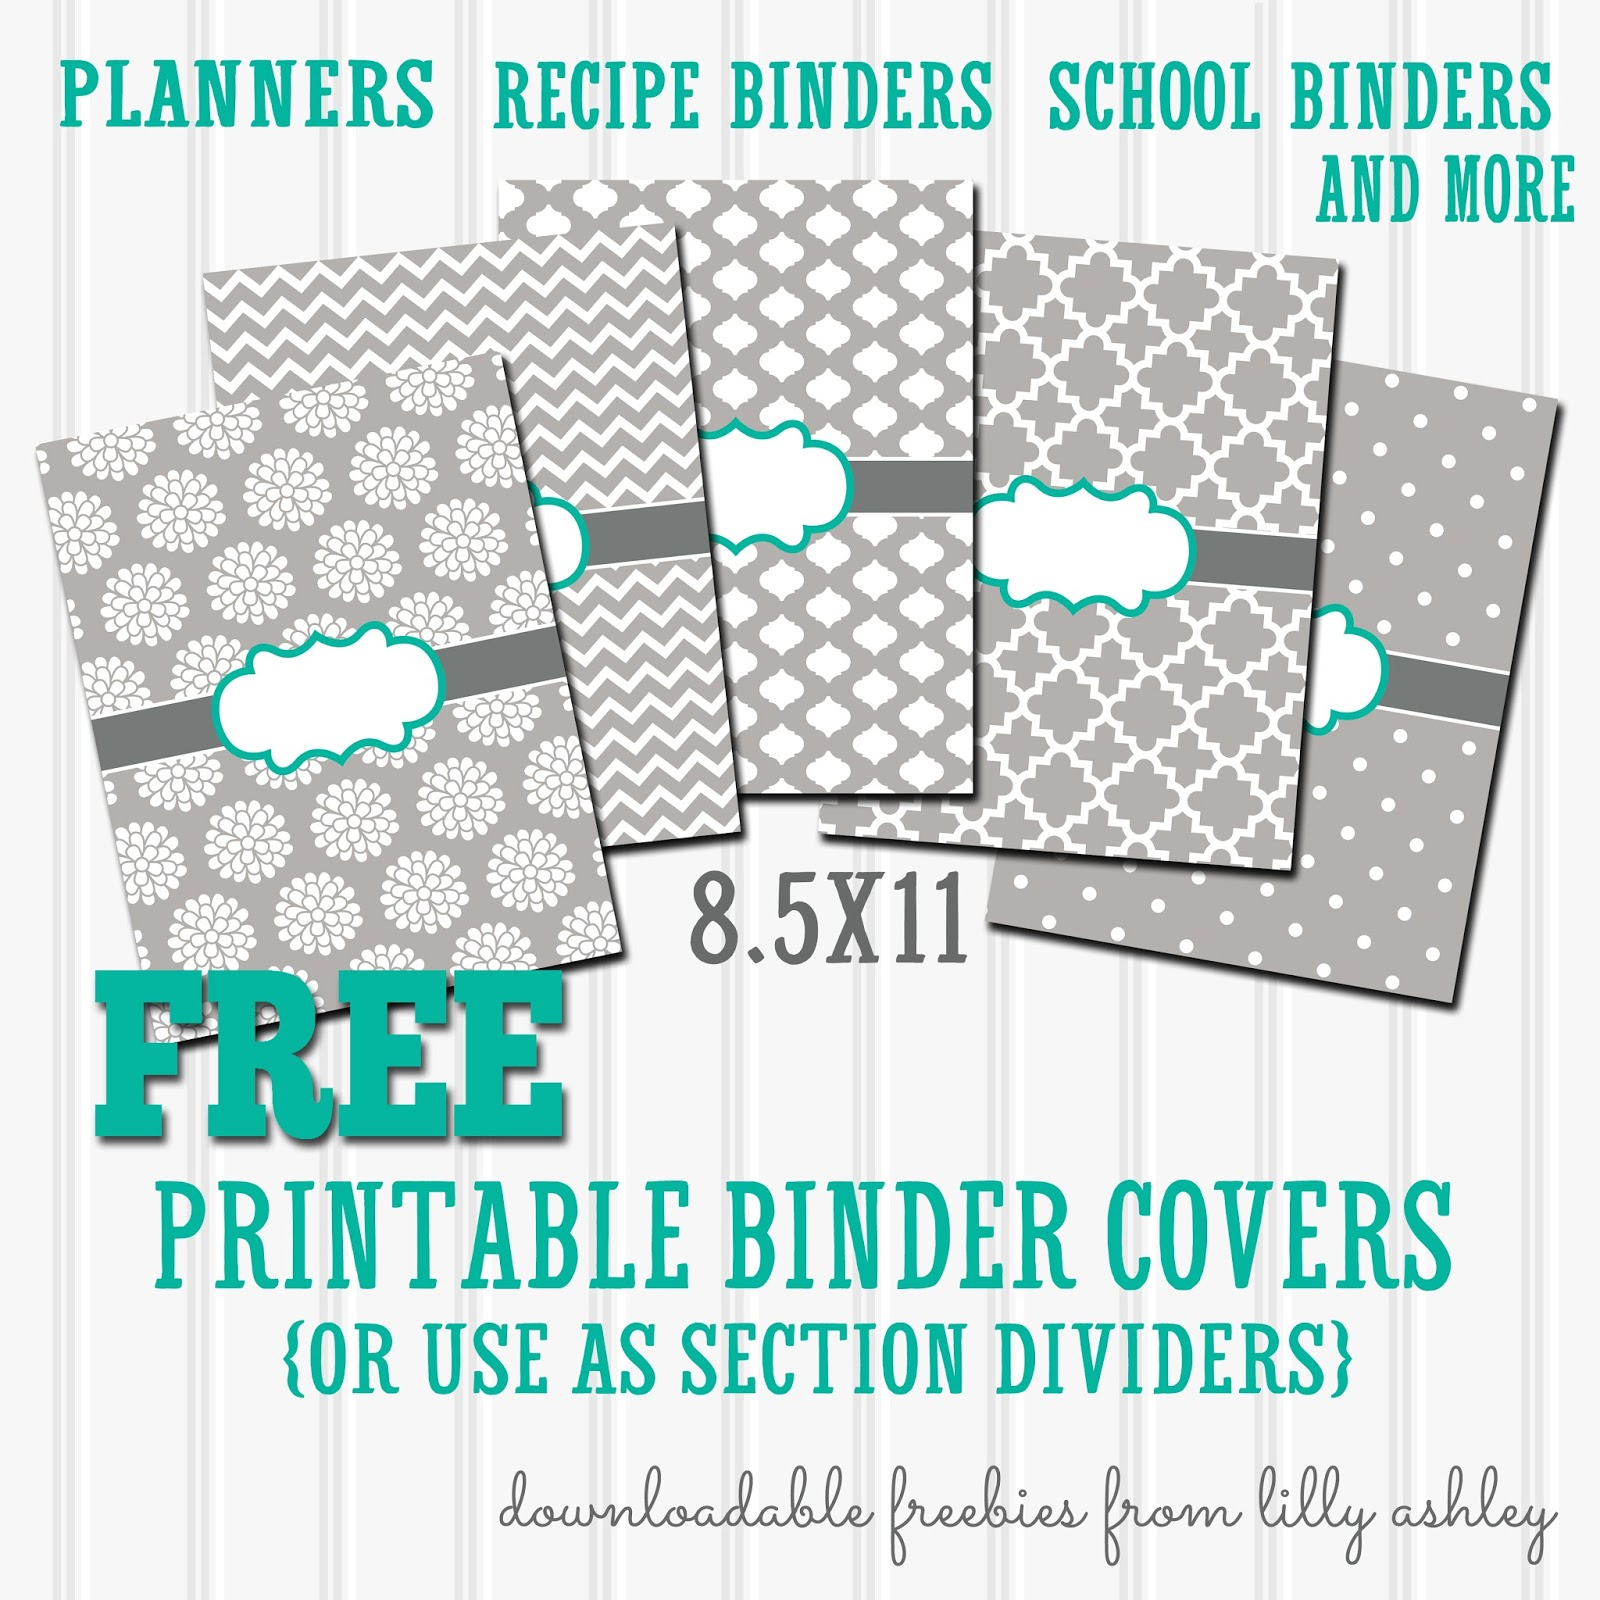 Make It Createlillyashleyfreebie Downloads: Free Binder - Free Printable Binder Covers And Spines